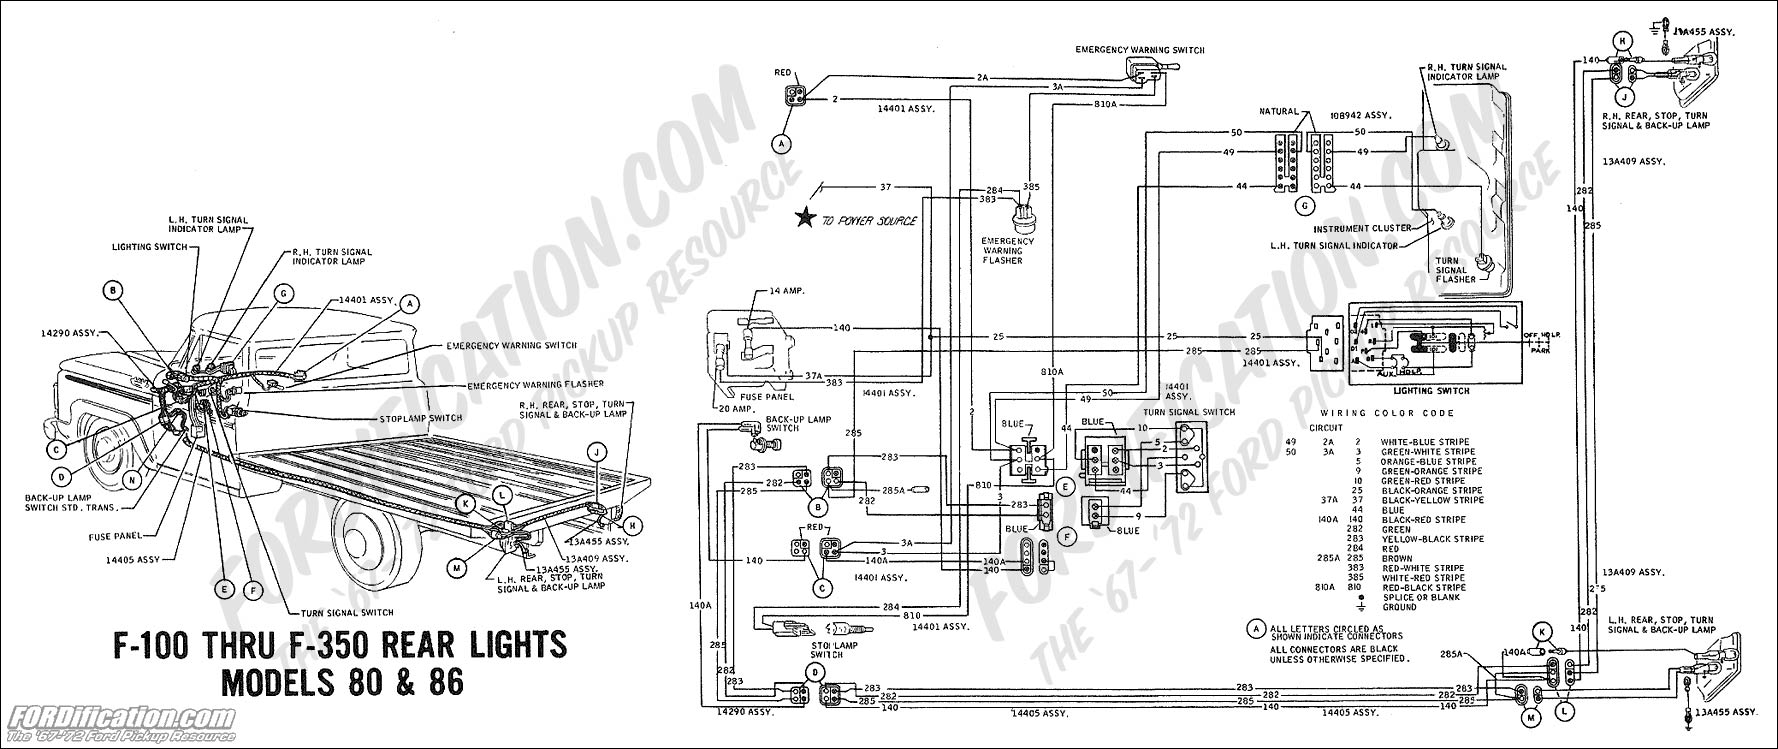 hight resolution of 1996 f700 wiring diagram wiring diagram library1998 ford f700 wiring diagrams wiring diagram a6 f510 wiring